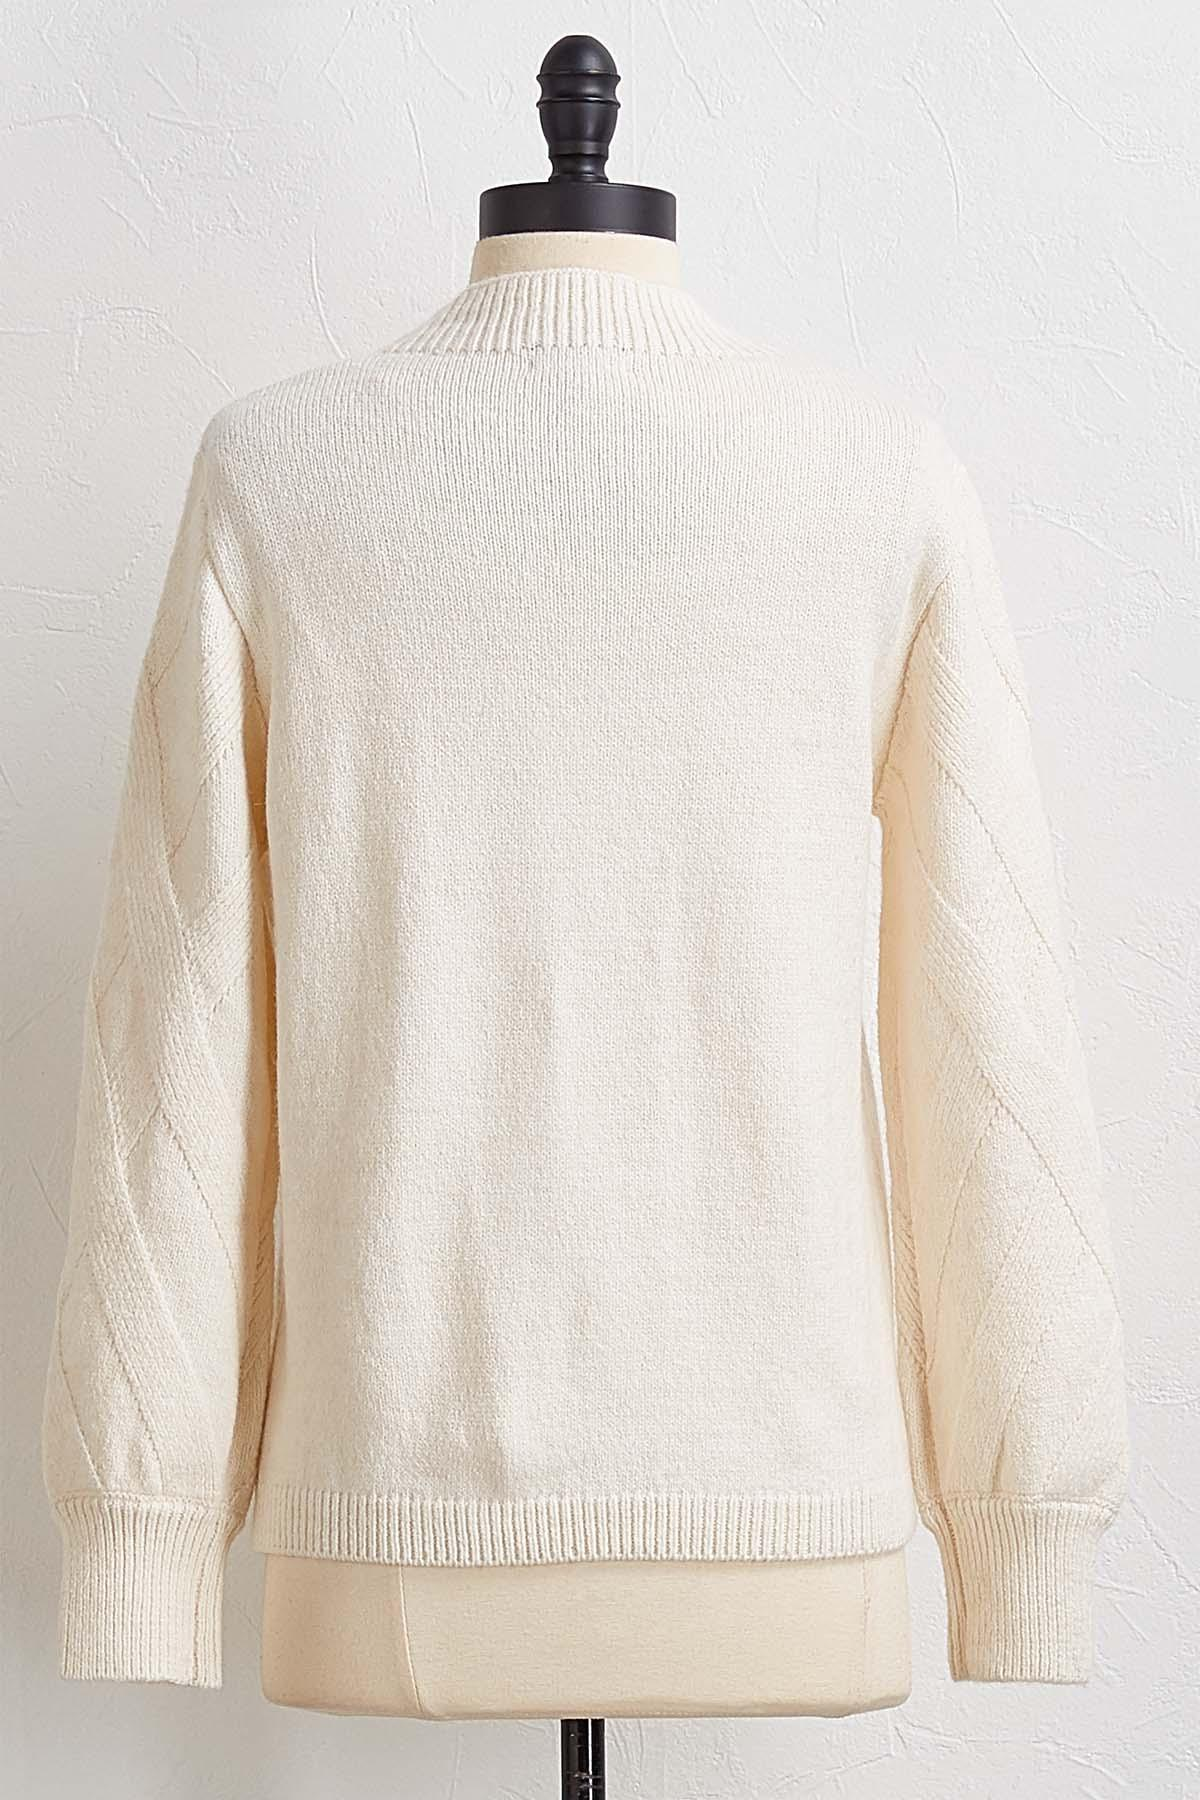 Criss Cross Cable Sweater